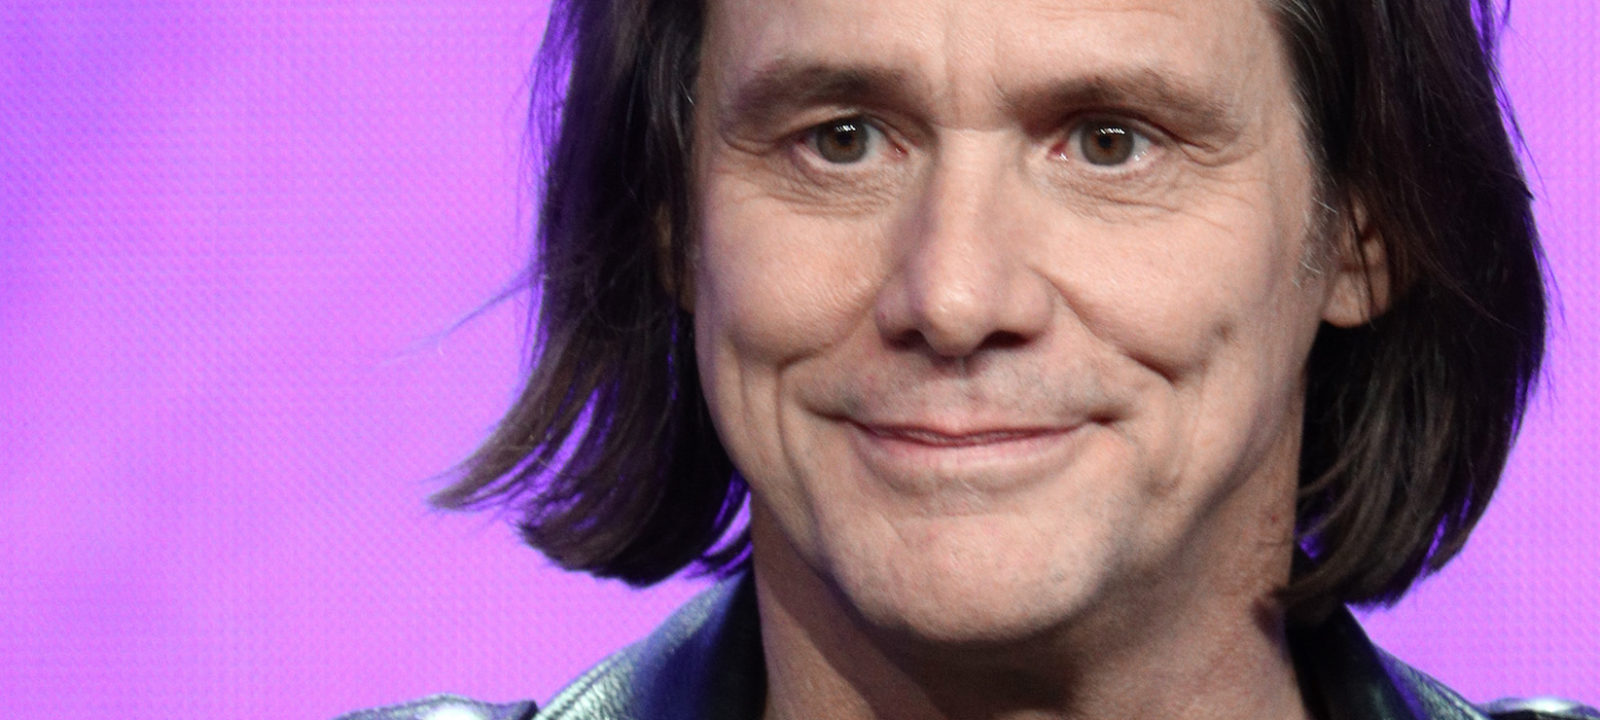 """Executive producer/actor Jim Carrey from """"Kidding"""" speaks onstage at the Showtime Network portion of the Summer 2018 TCA Press Tour at The Beverly Hilton Hotel on August 6, 2018 in Beverly Hills, California."""